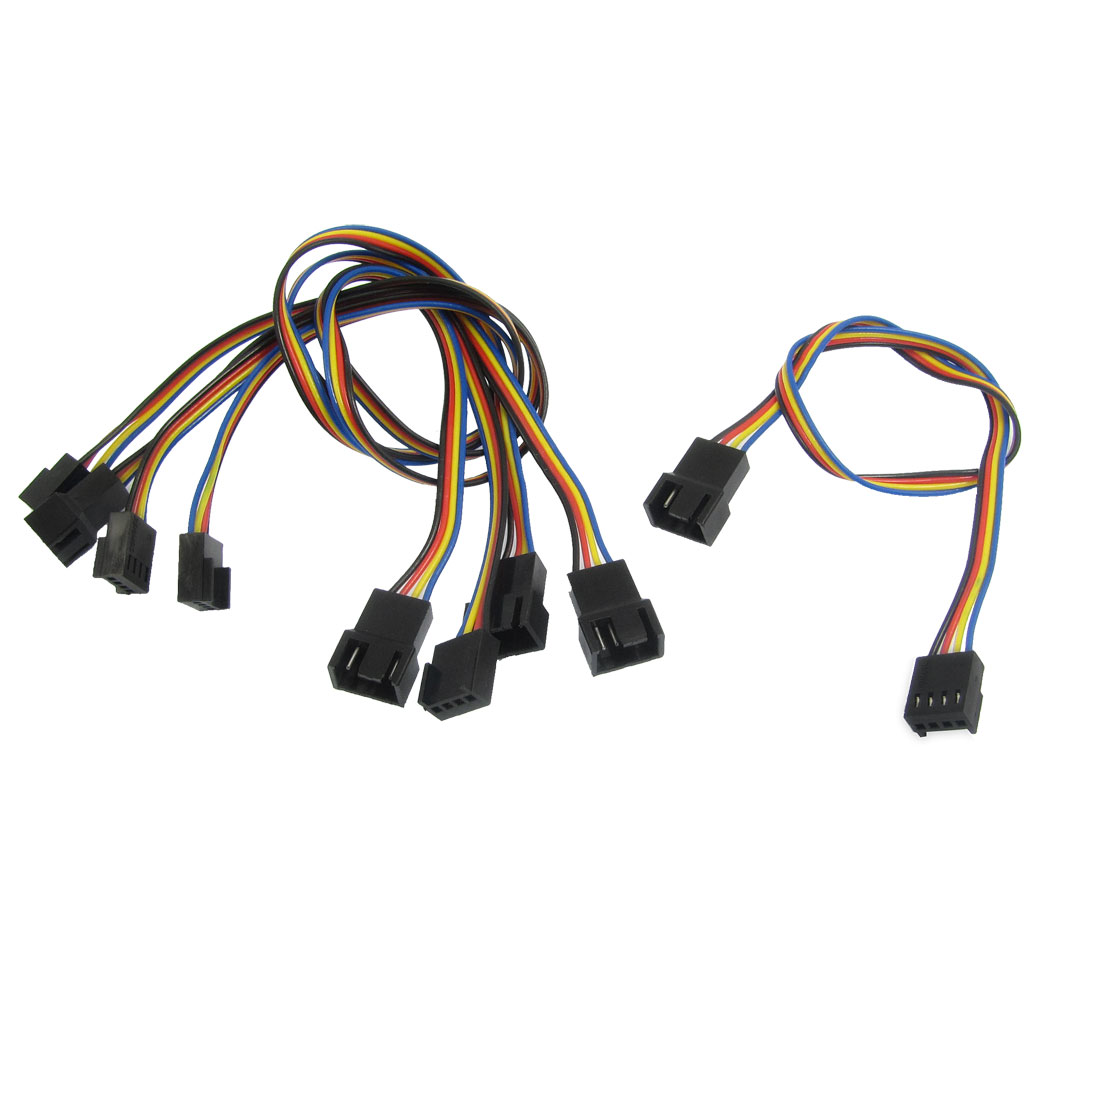 5 Pcs 4-pin Male to Female Motherboard Extension Cable Cord for Computer